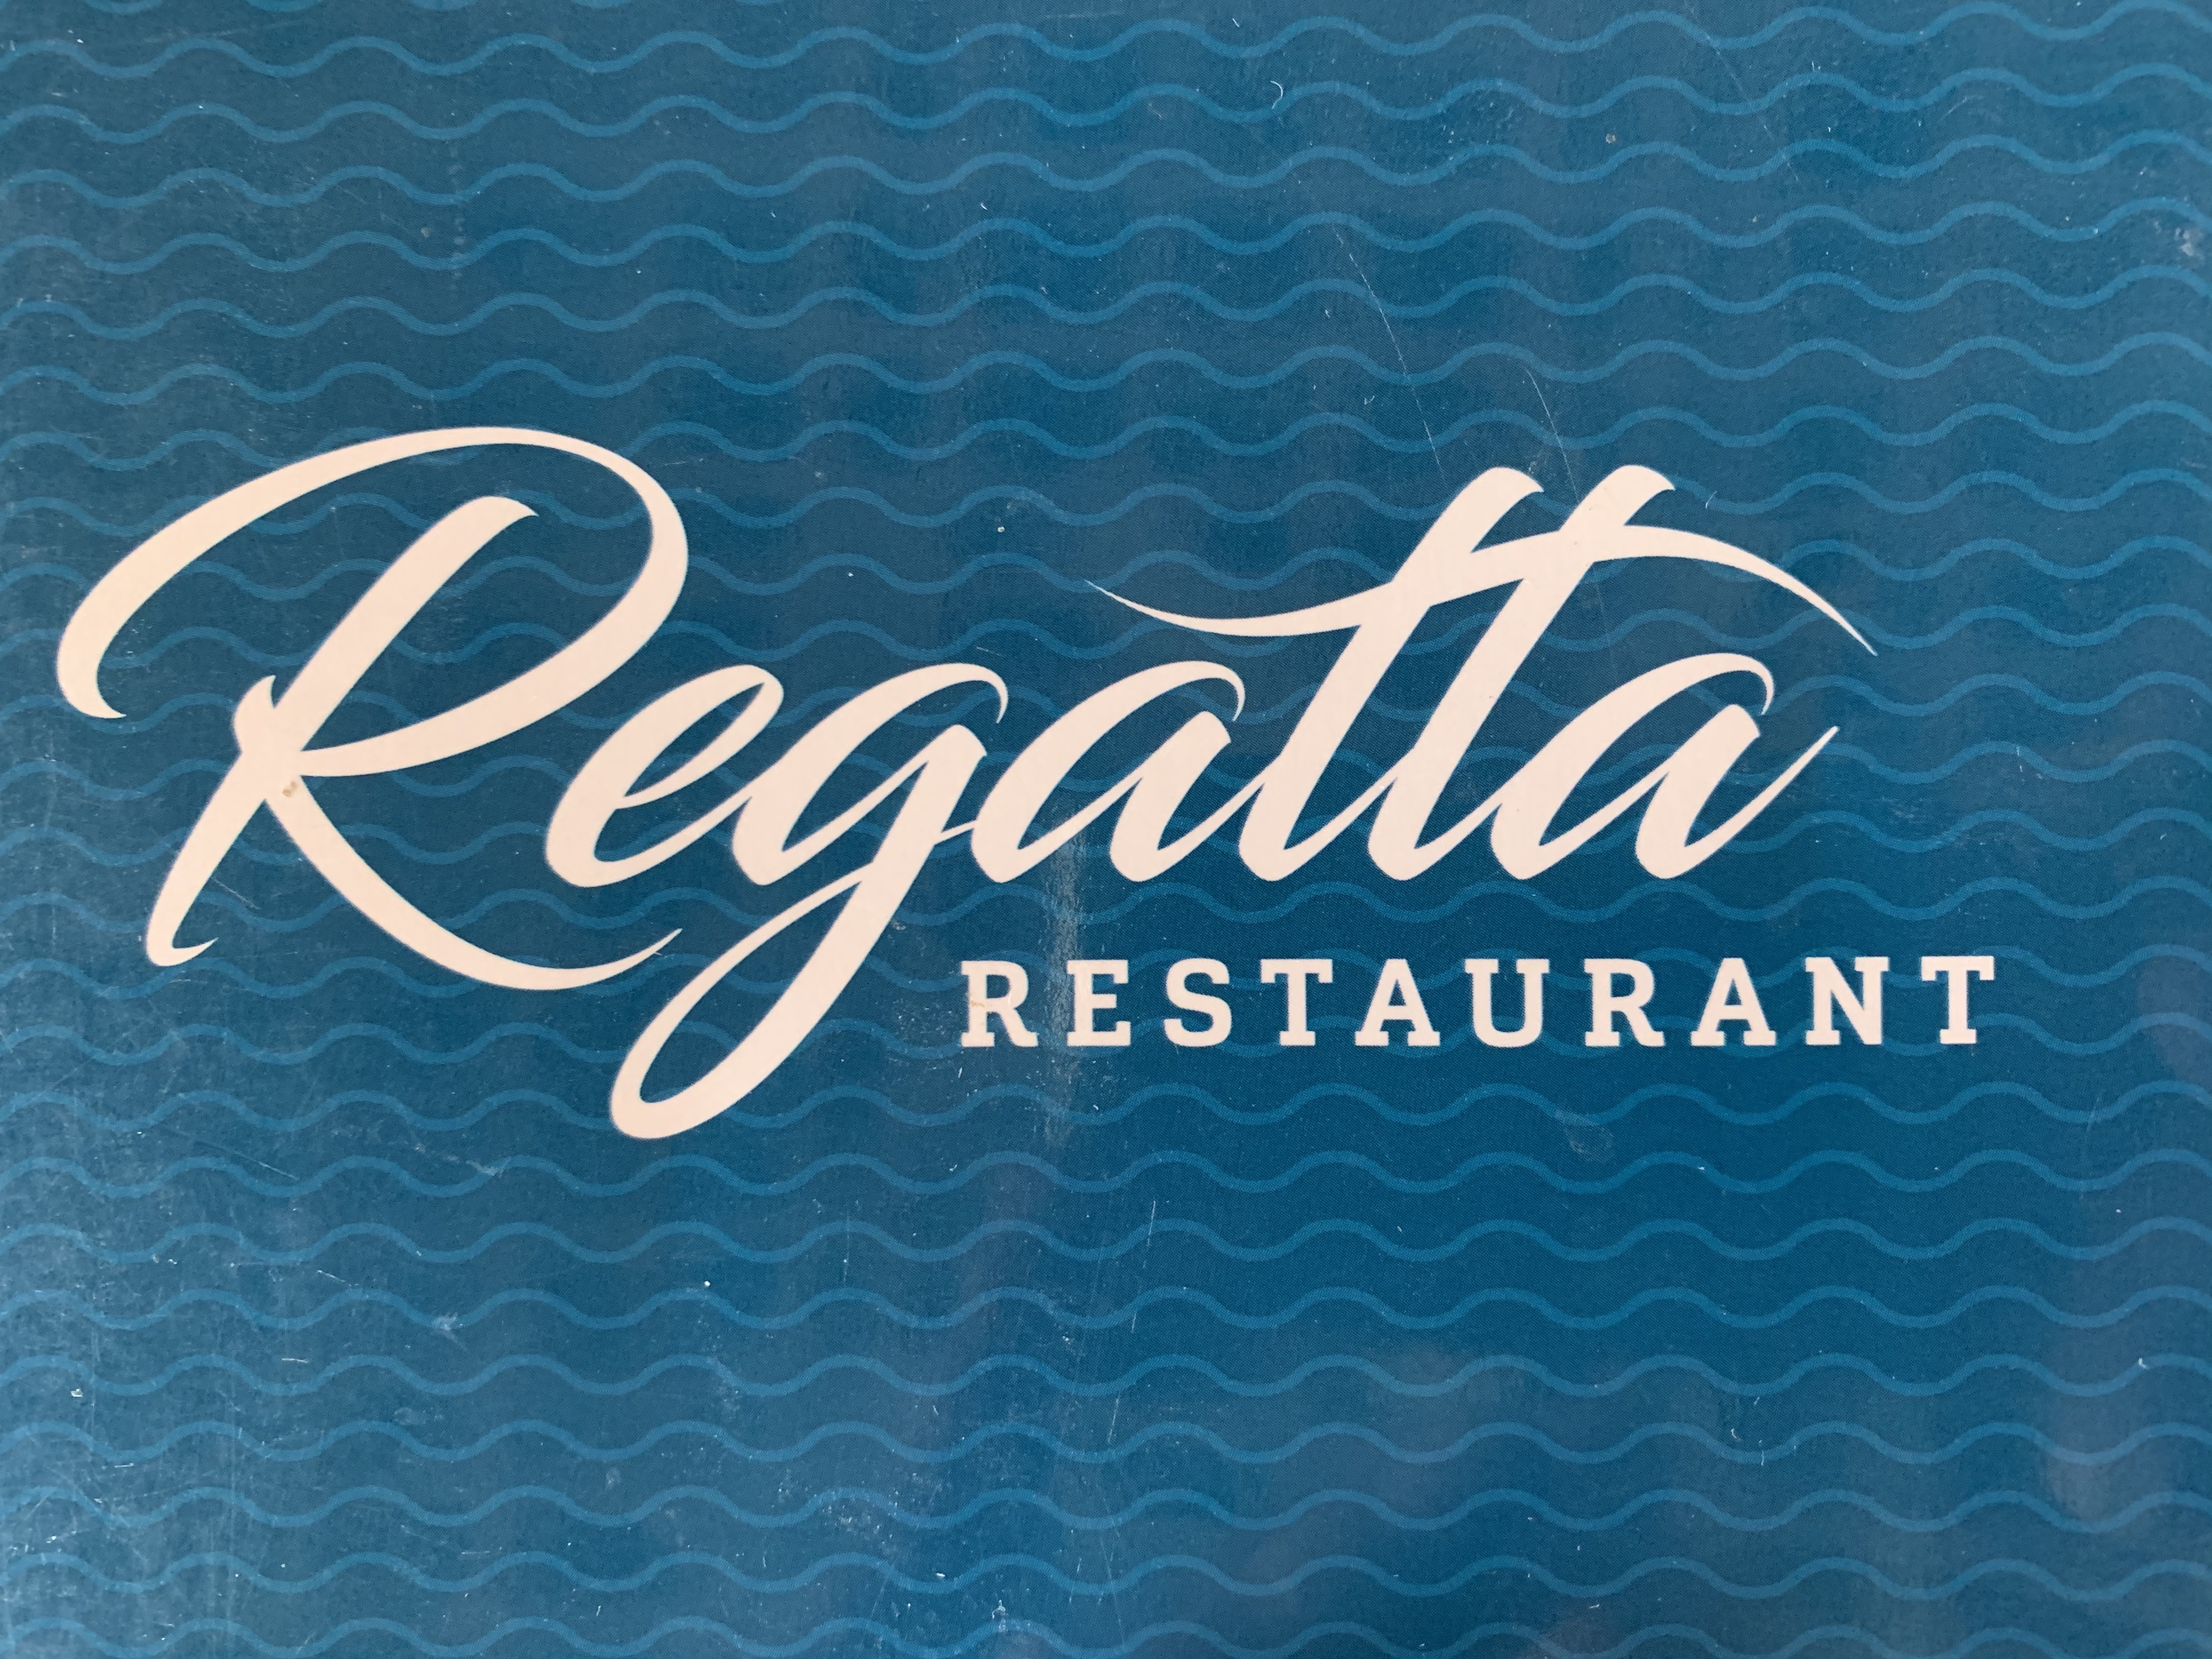 Regatta Restaurant